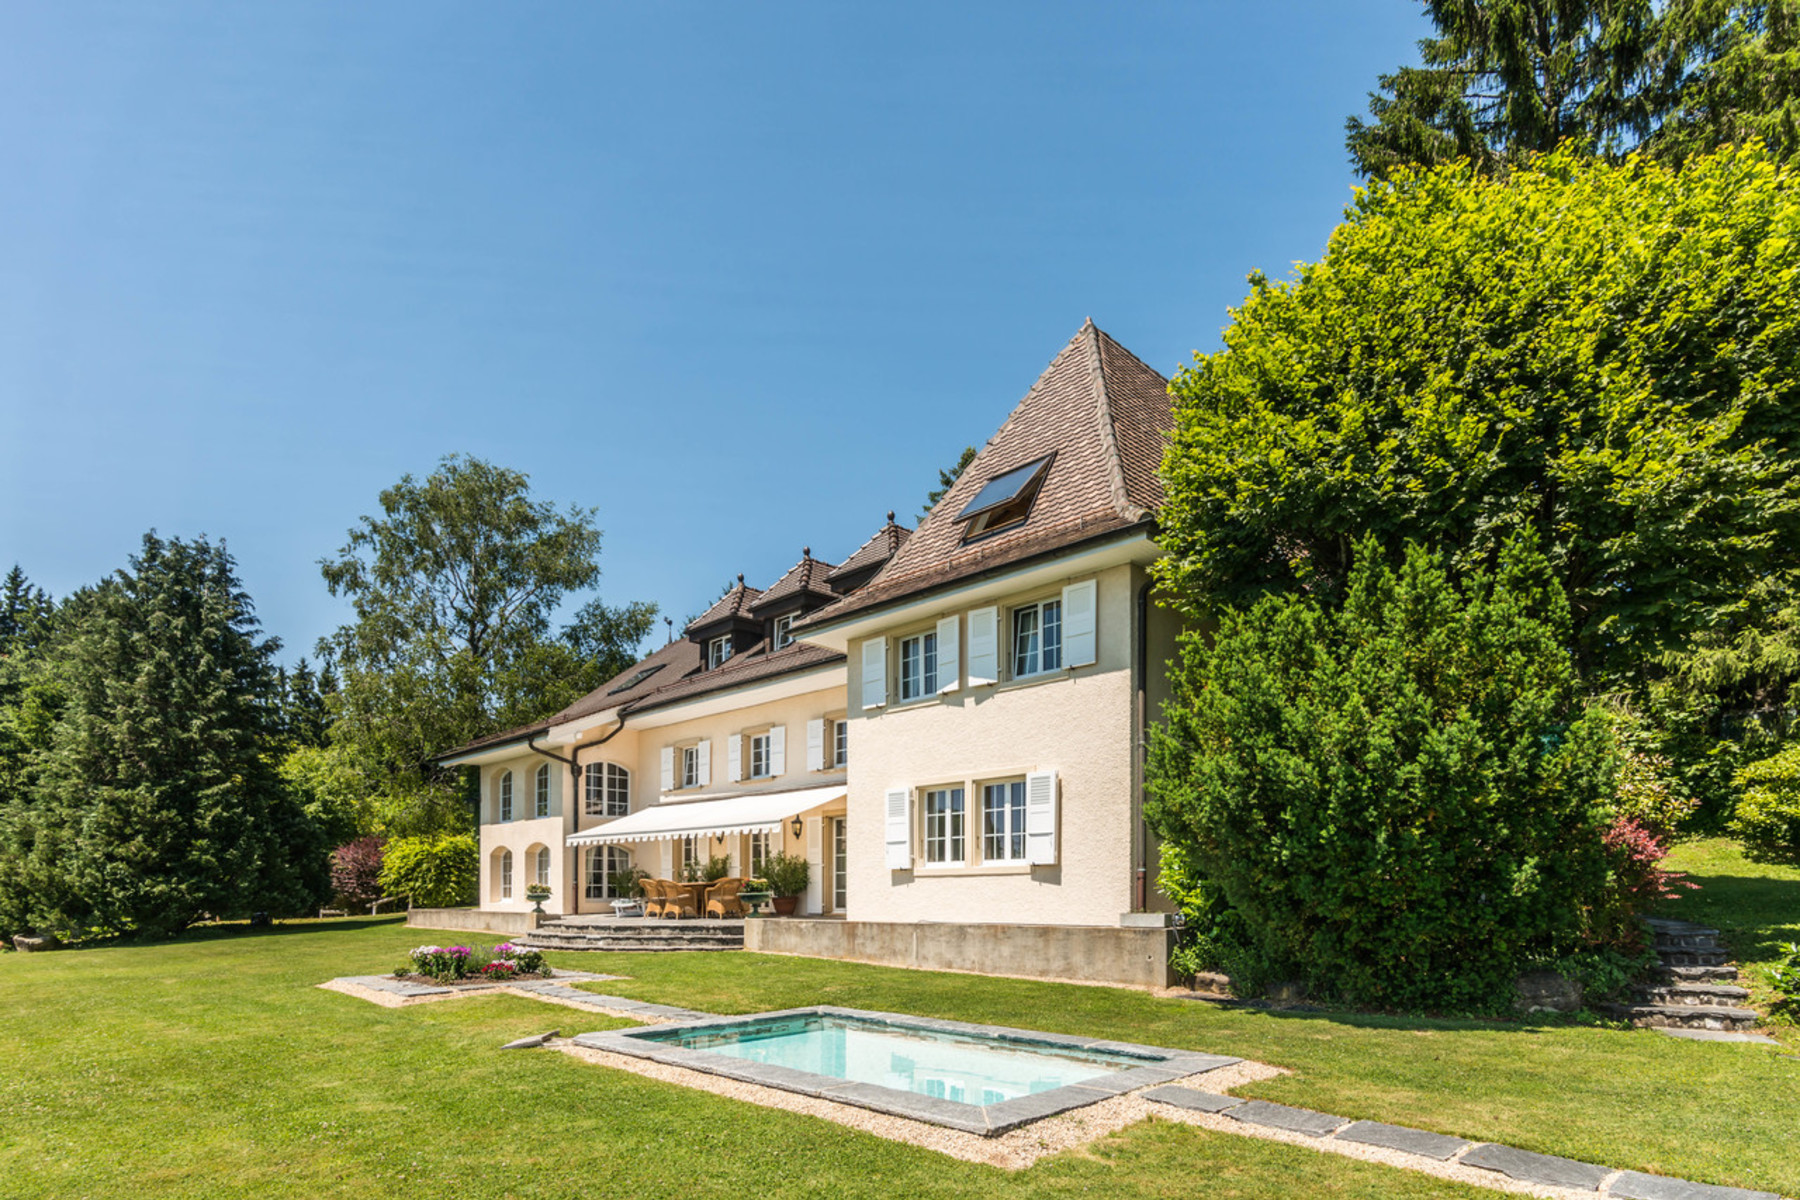 Single Family Home for Sale at Charming property overlooking the UNESCO World Heritage Site Grandvaux, Grandvaux, Vaud, 1091 Switzerland